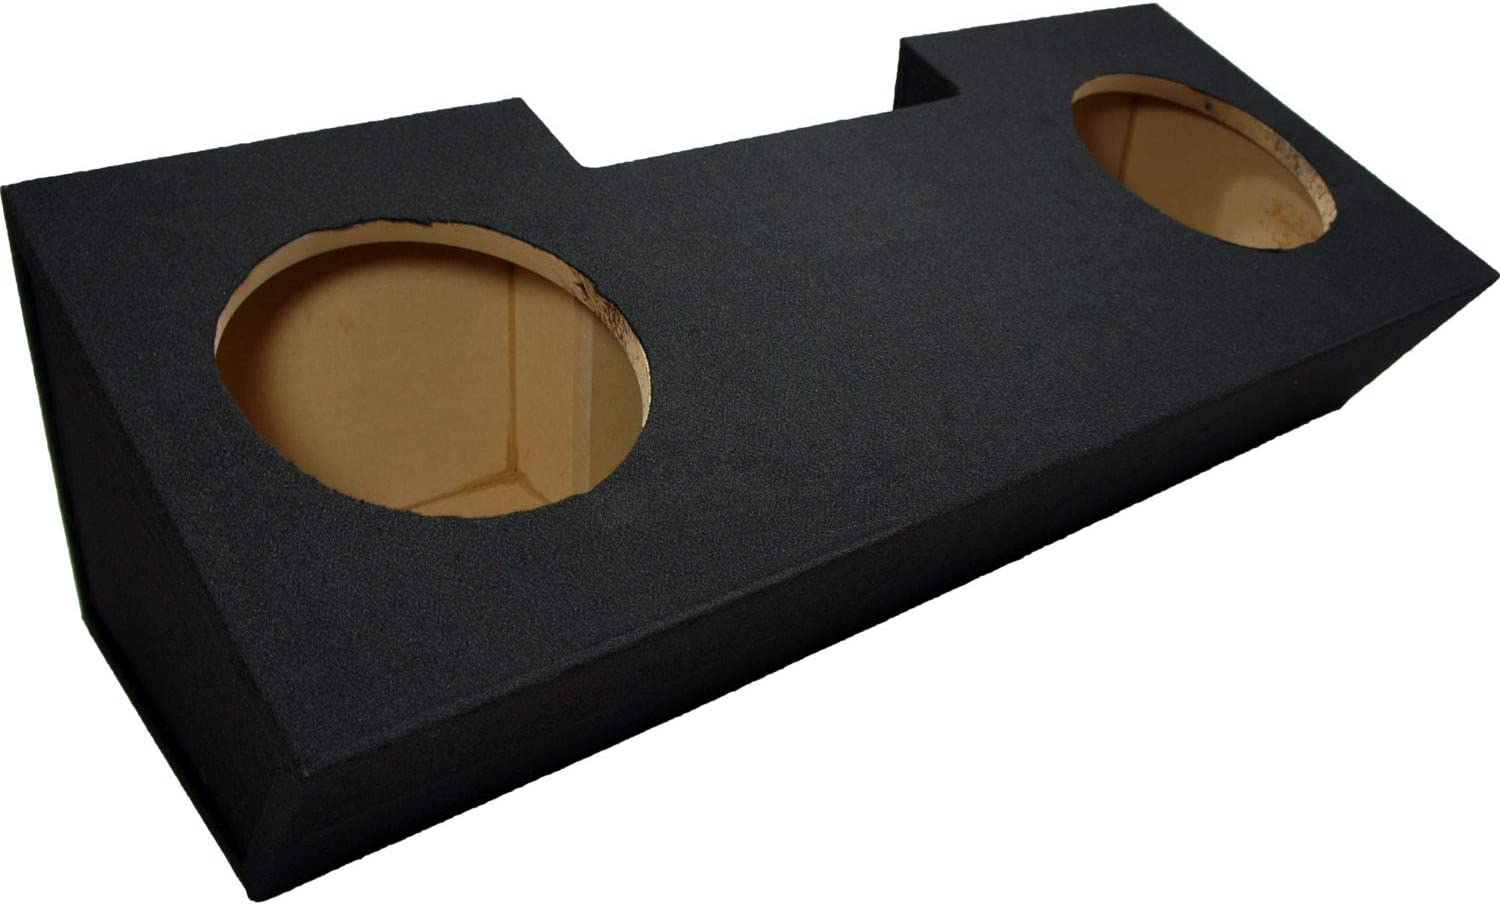 "Compatible with Chevy Camaro or Pontiac Firebird Coupe 1982-1992 Dual 10"" Subwoofer Hatch Sub Box Speaker Enclosure"